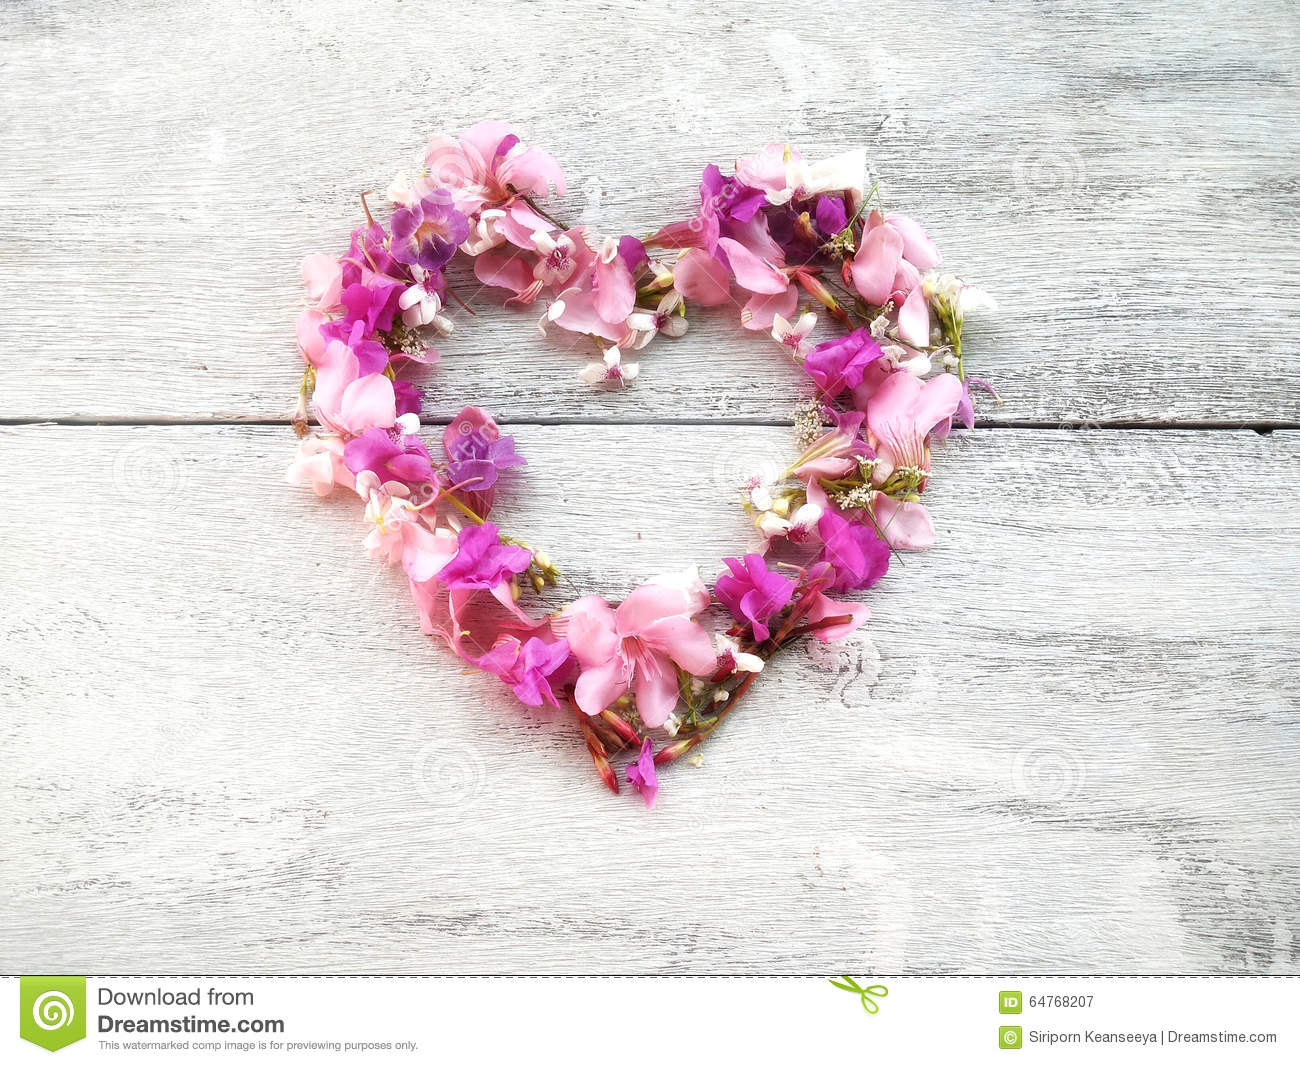 Beautiful purple flowers heart shape for valentine day and wedding beautiful flowers heart shape for valentine on wood background royalty free stock photography dhlflorist Image collections